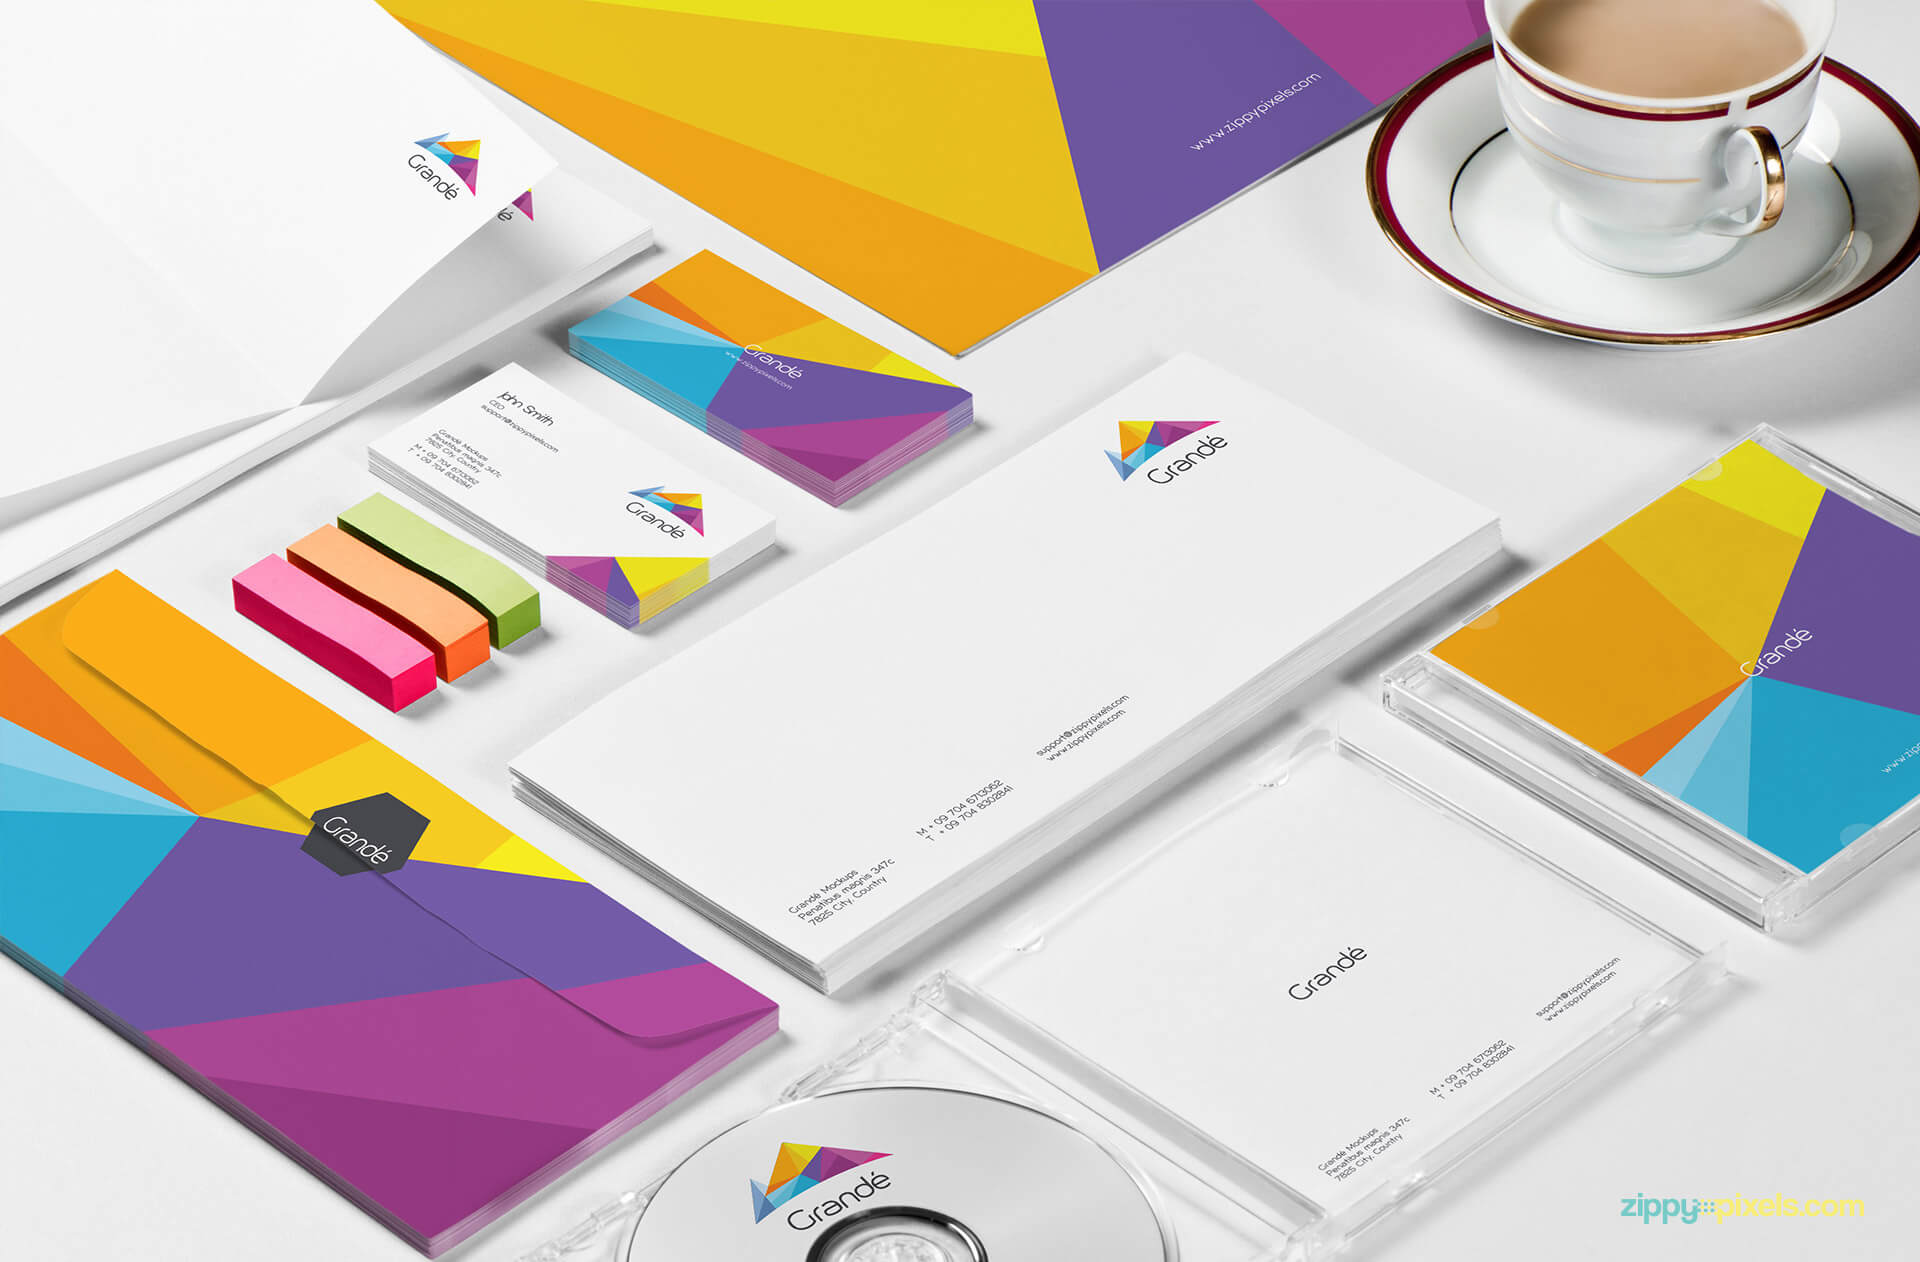 Stationery Branding Mockup - Closeup of Letterhead, Envelope, CD Cover